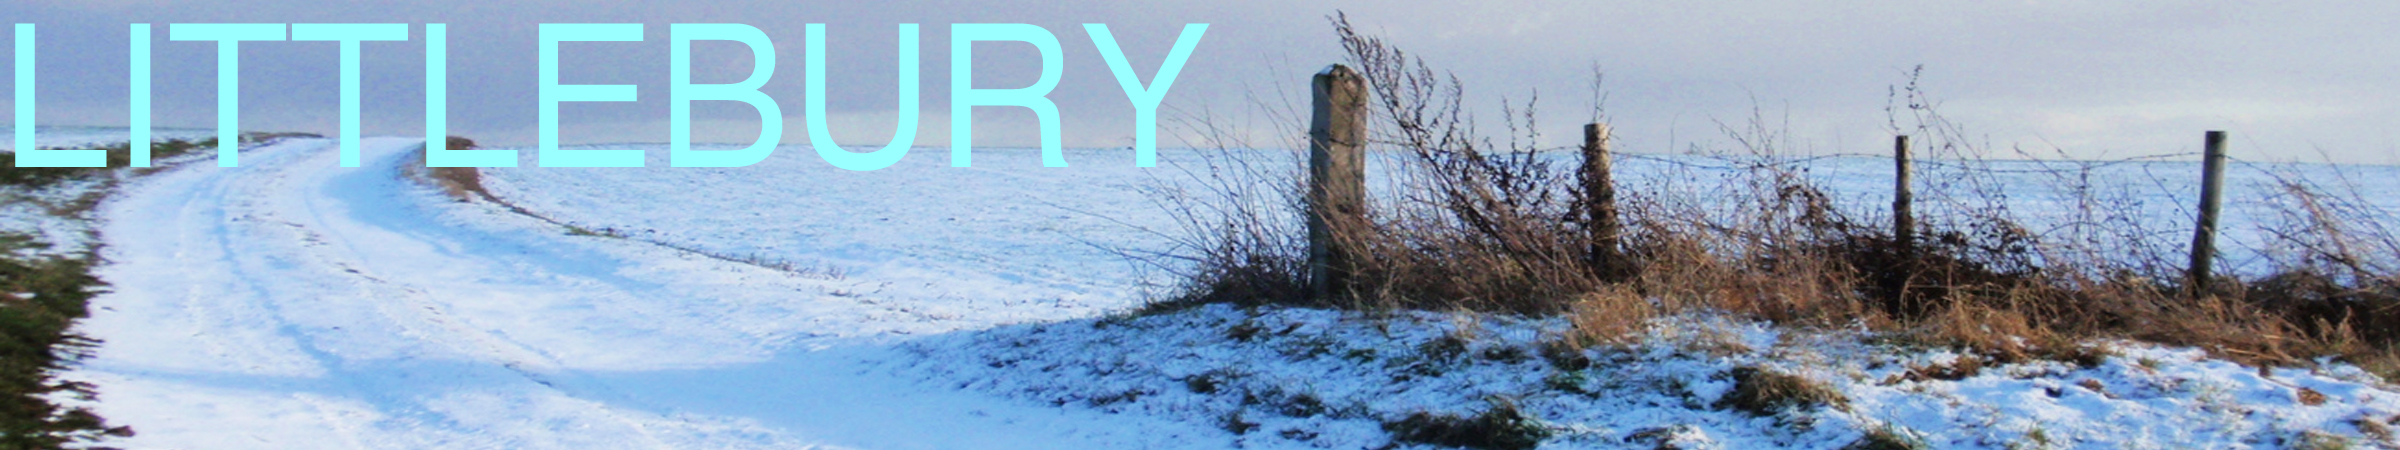 Littlebury Website Banner - January